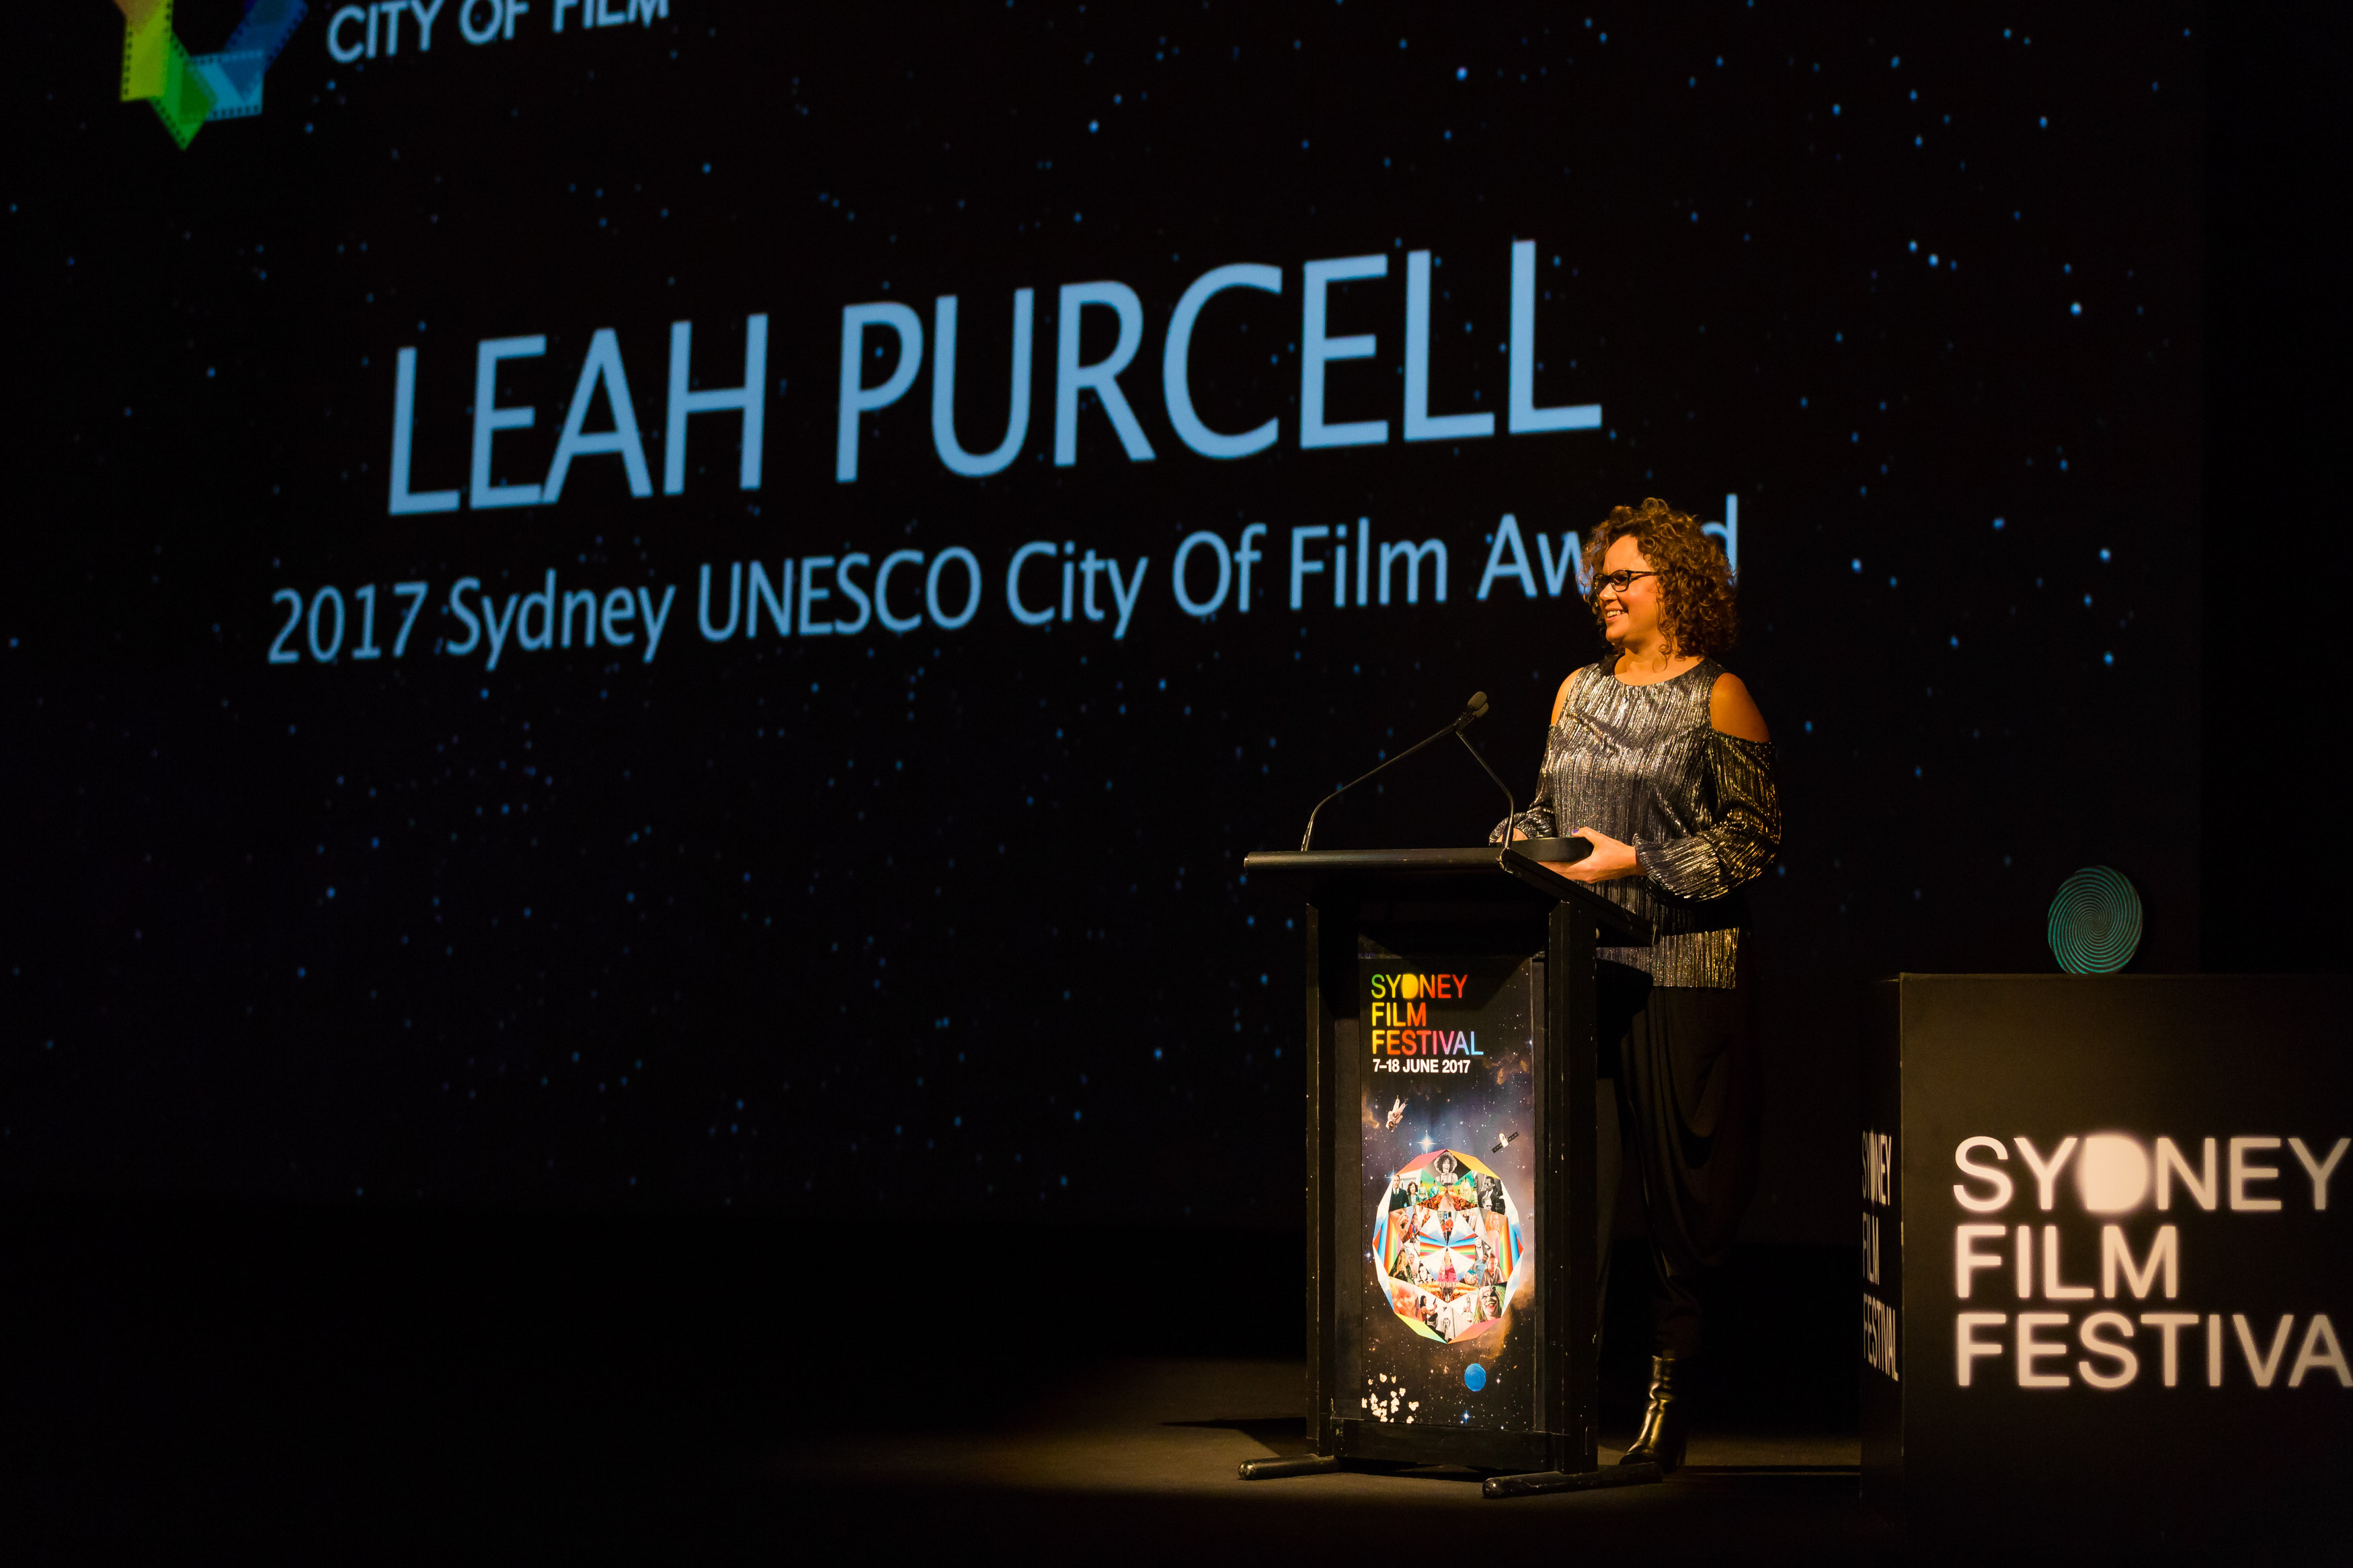 Leah Purcell awarded the 2017 Sydney UNESCO City of Film Award, News